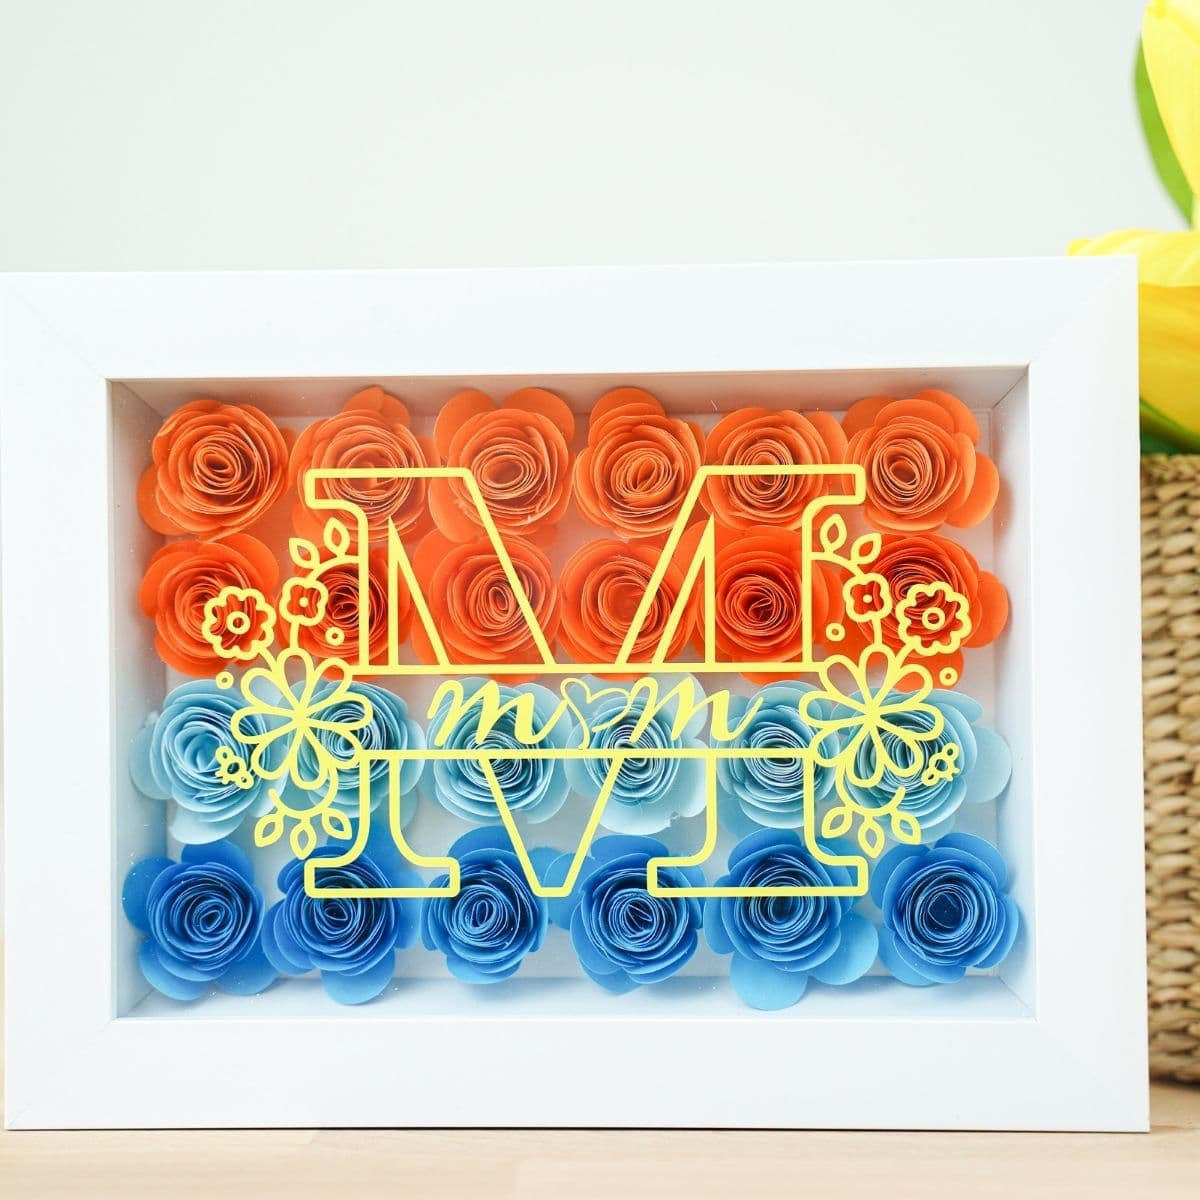 White shadowbox with colorful flowers on table